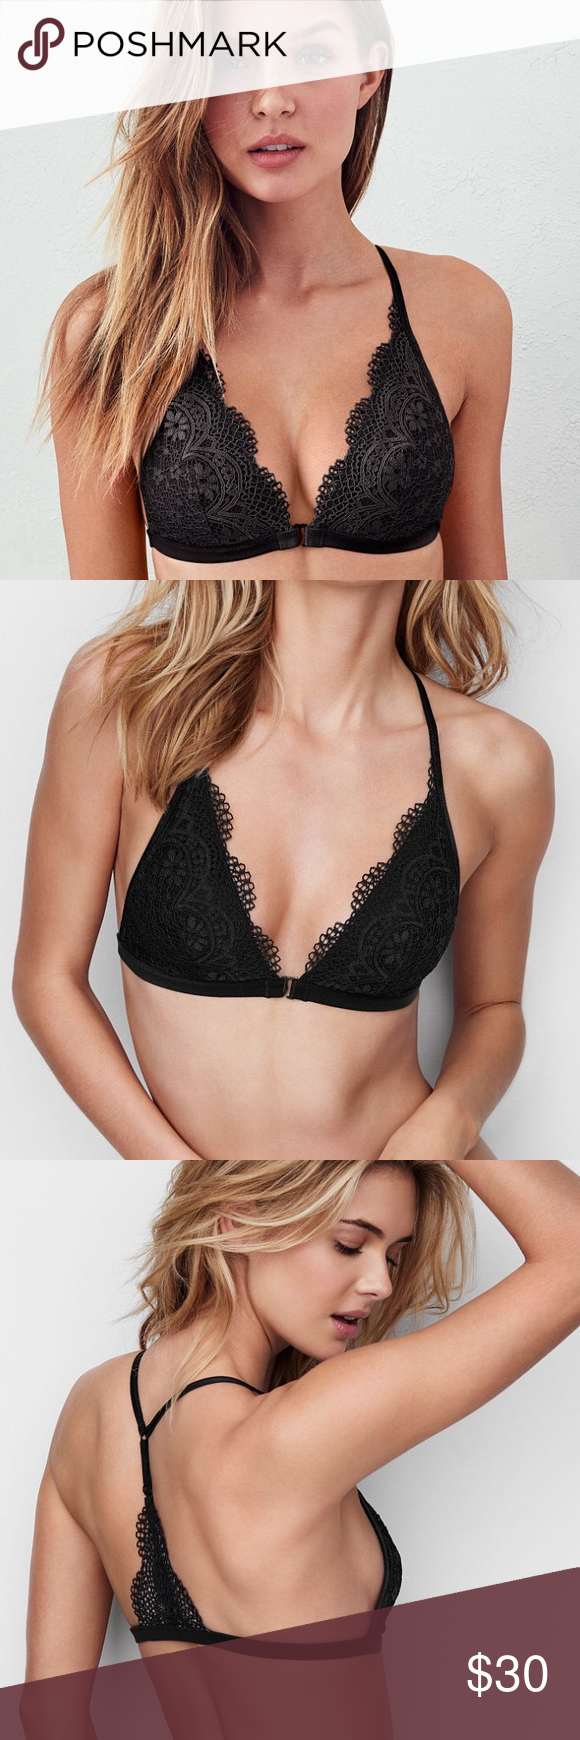 66ddb18cb8 Victoria s Secret Front-close Bralette - Black A boho beauty underneath it  all  with